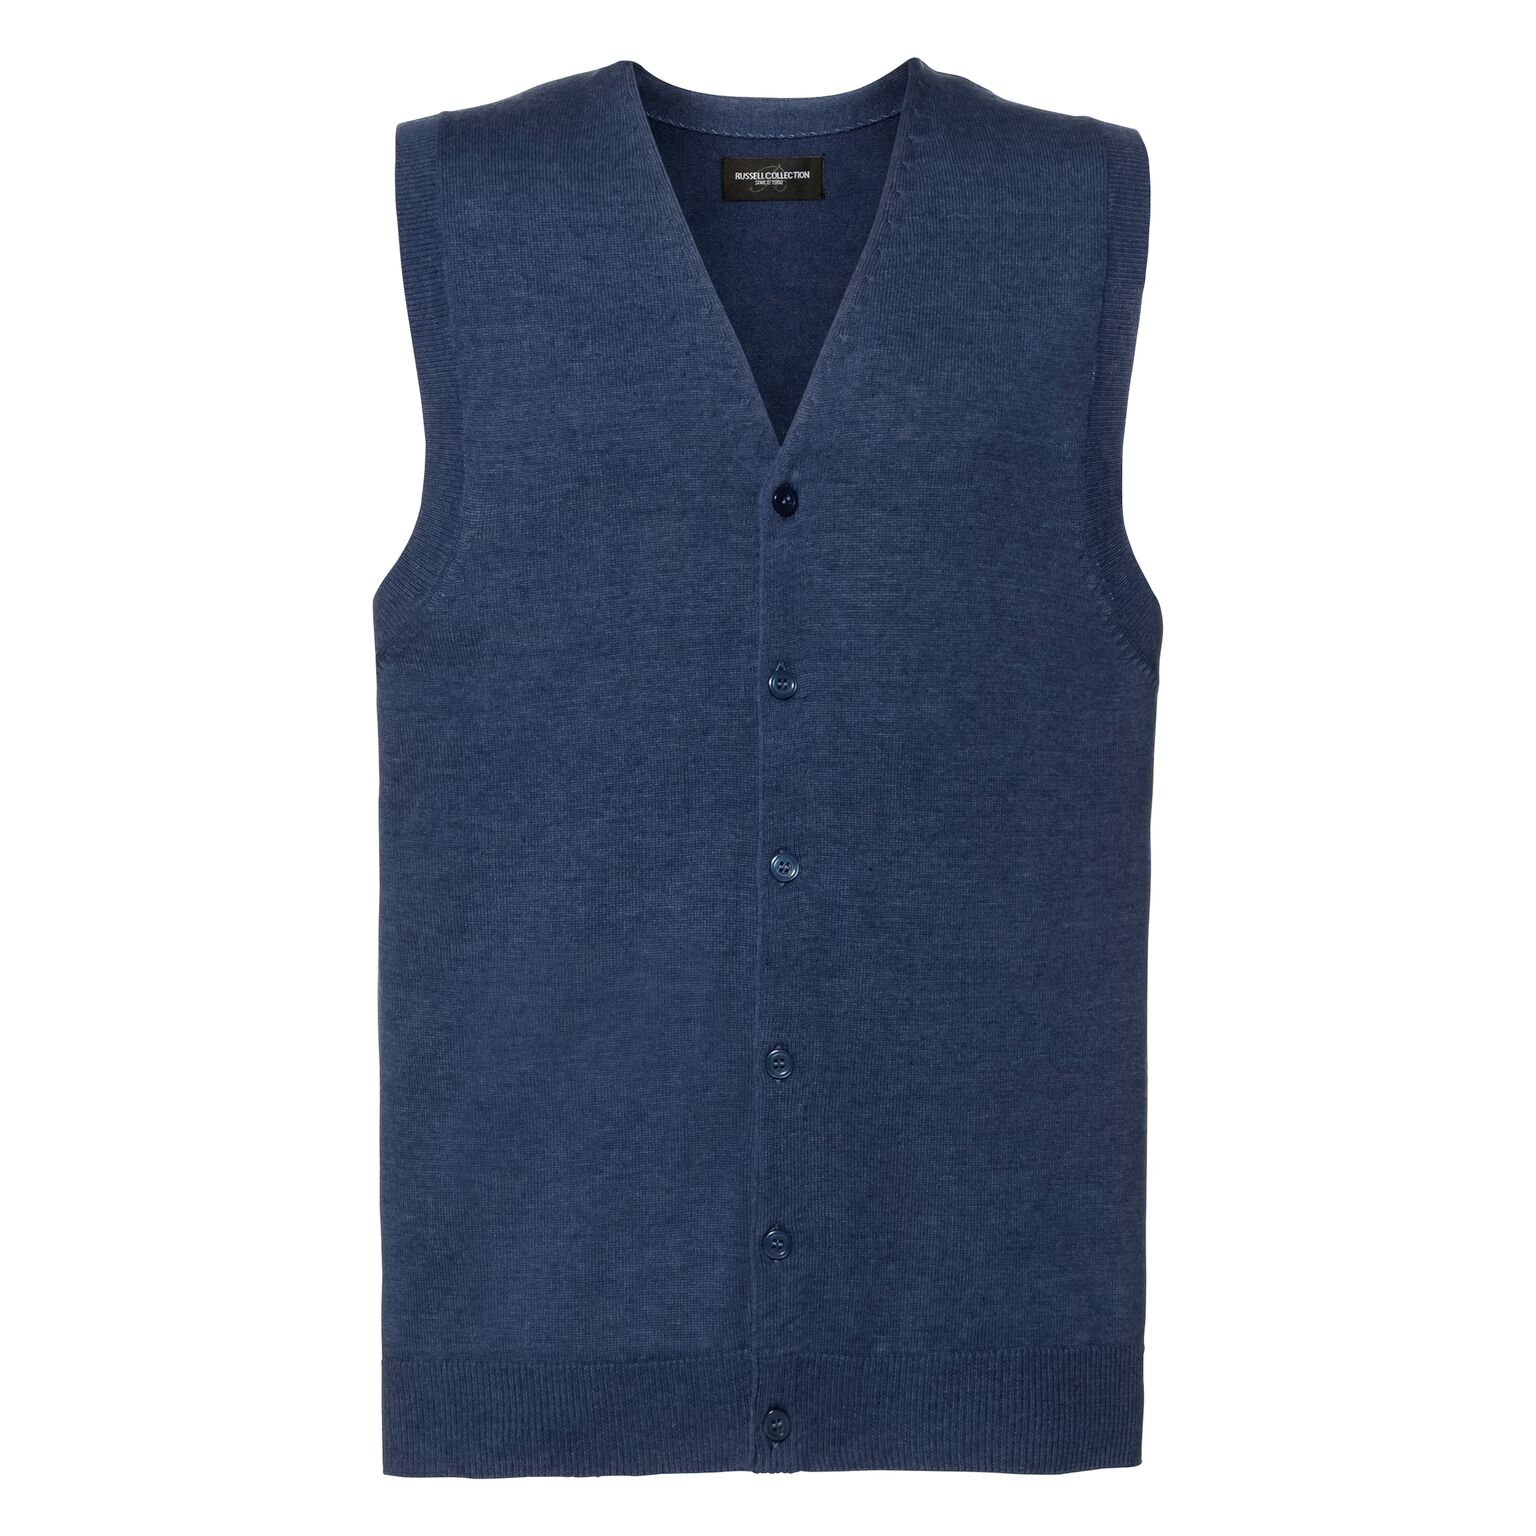 Russell Mens Sleeveless Cotton Acrylic V Neck Cardigan (XS) (Denim Marl)